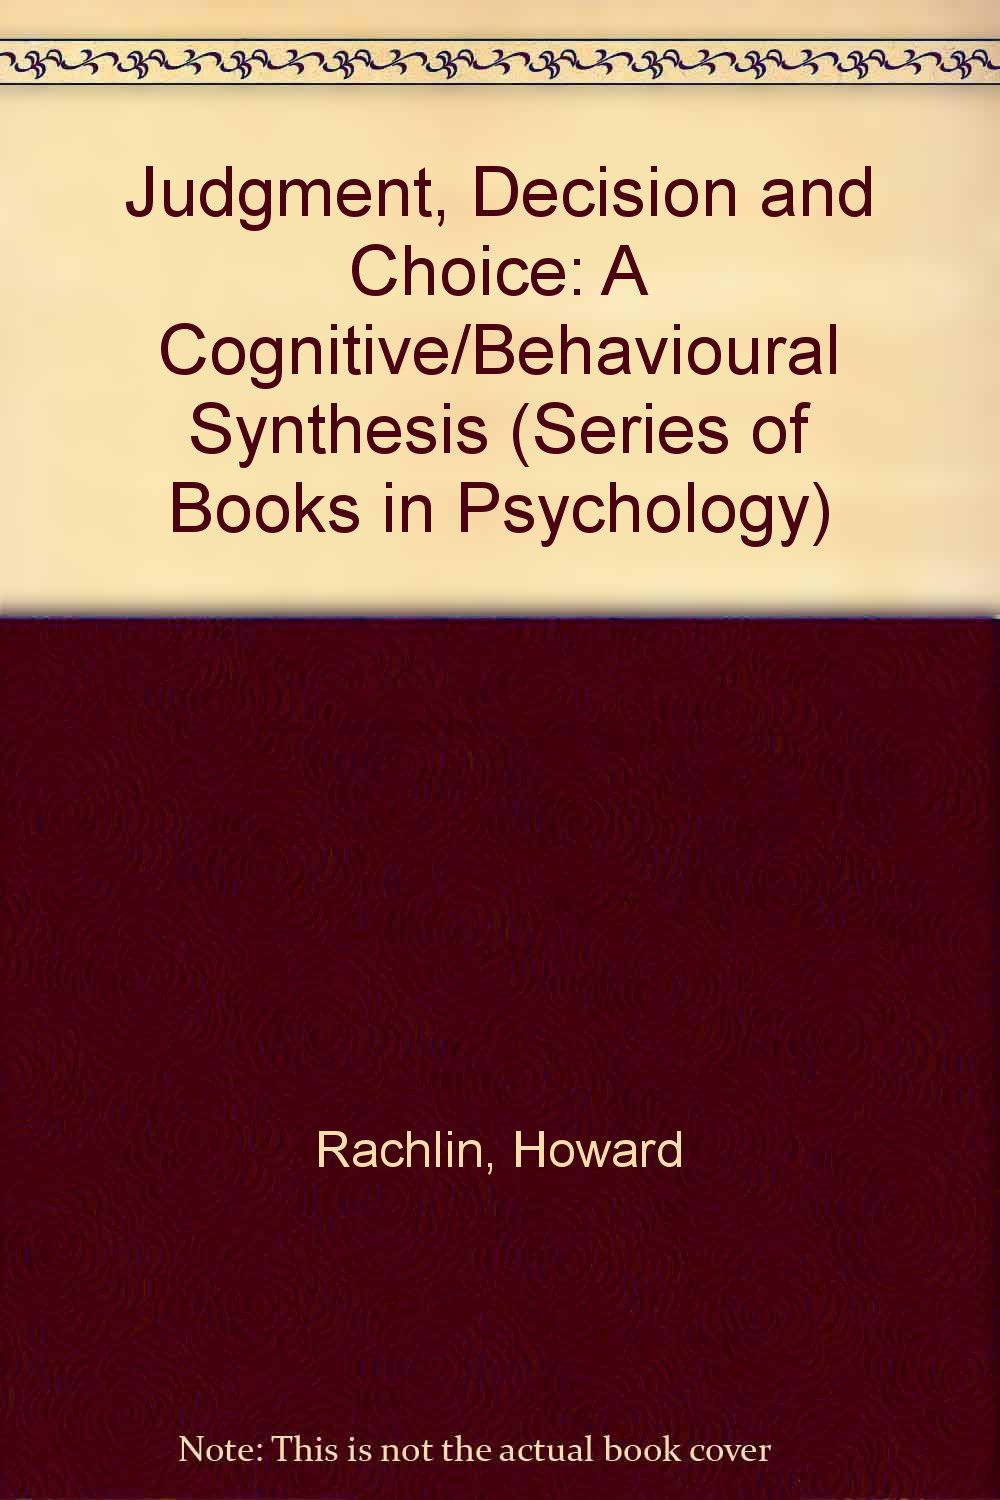 Judgment, Decision, and Choice: A Cognitive/Behavioral